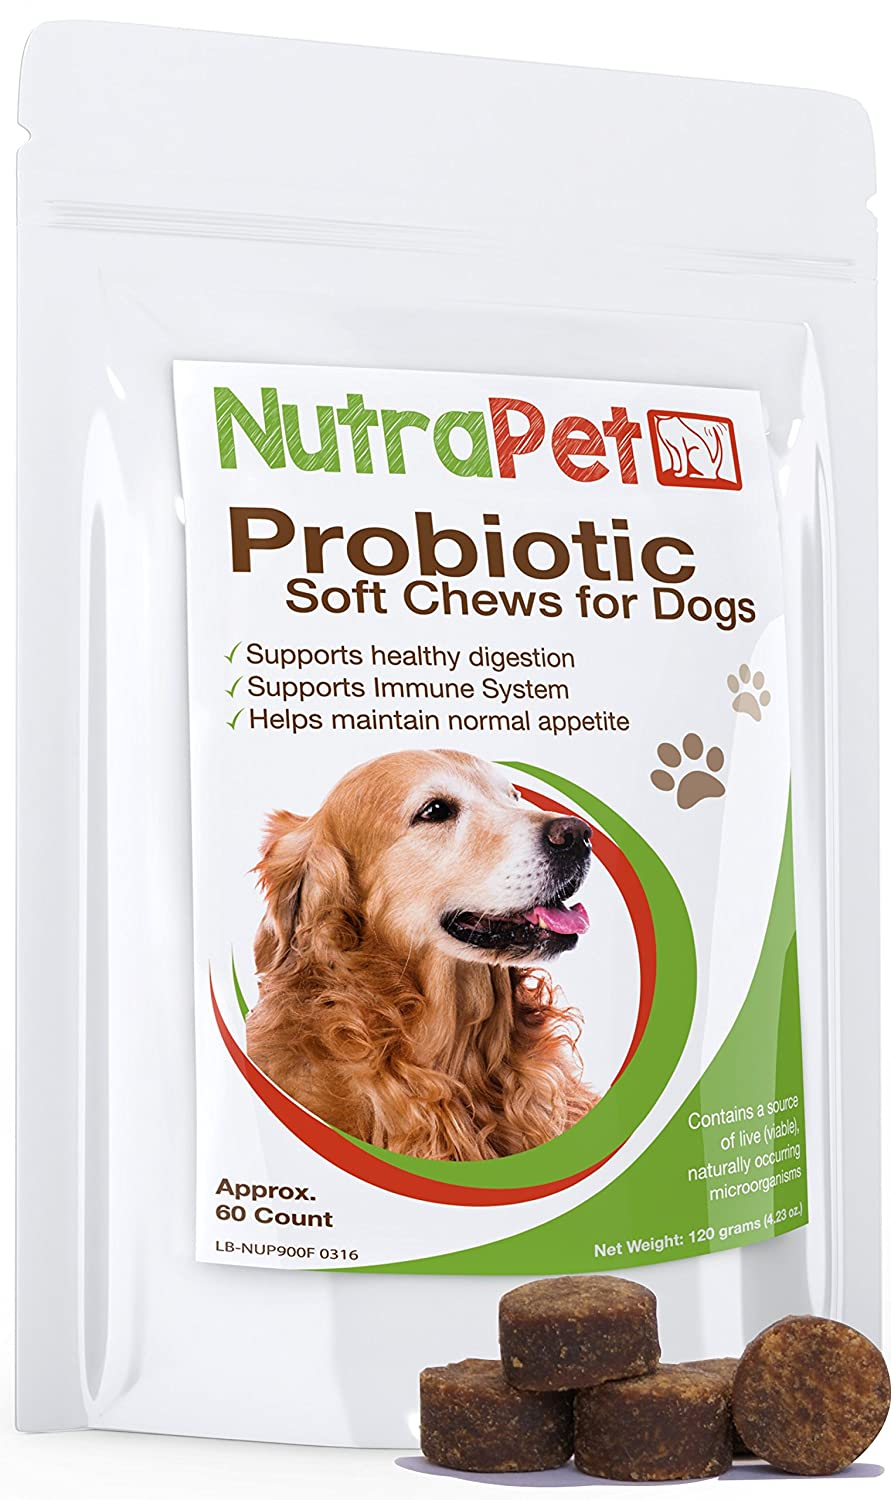 NutraPet - Best Probiotics for Dogs Soft Chews - Diarrhea and Gas Relief in a Tasty Treat - Delicious Chicken Liver Dog Probiotic That Your Pup Will Love! - 60 Count